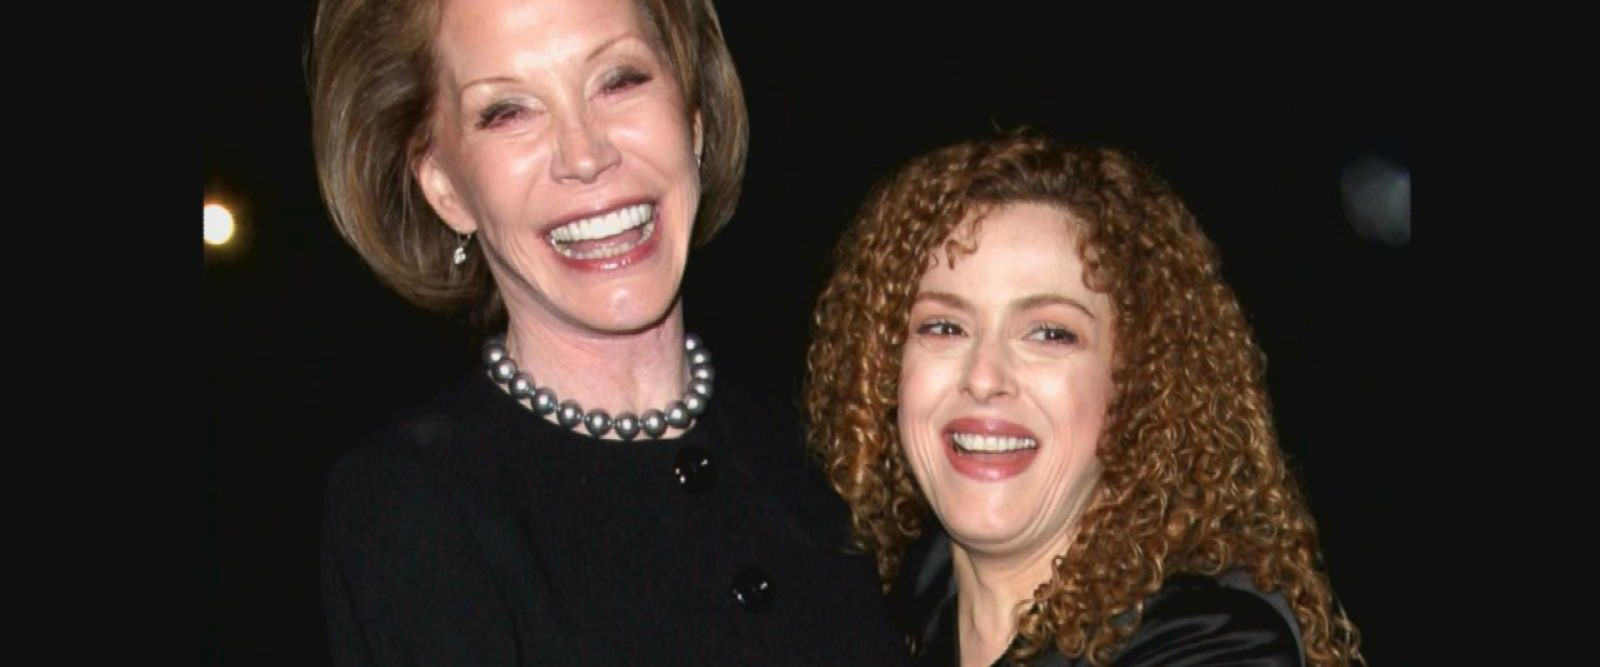 VIDEO: Bernadette Peters says she had her wedding at Mary Tyler Moore's house